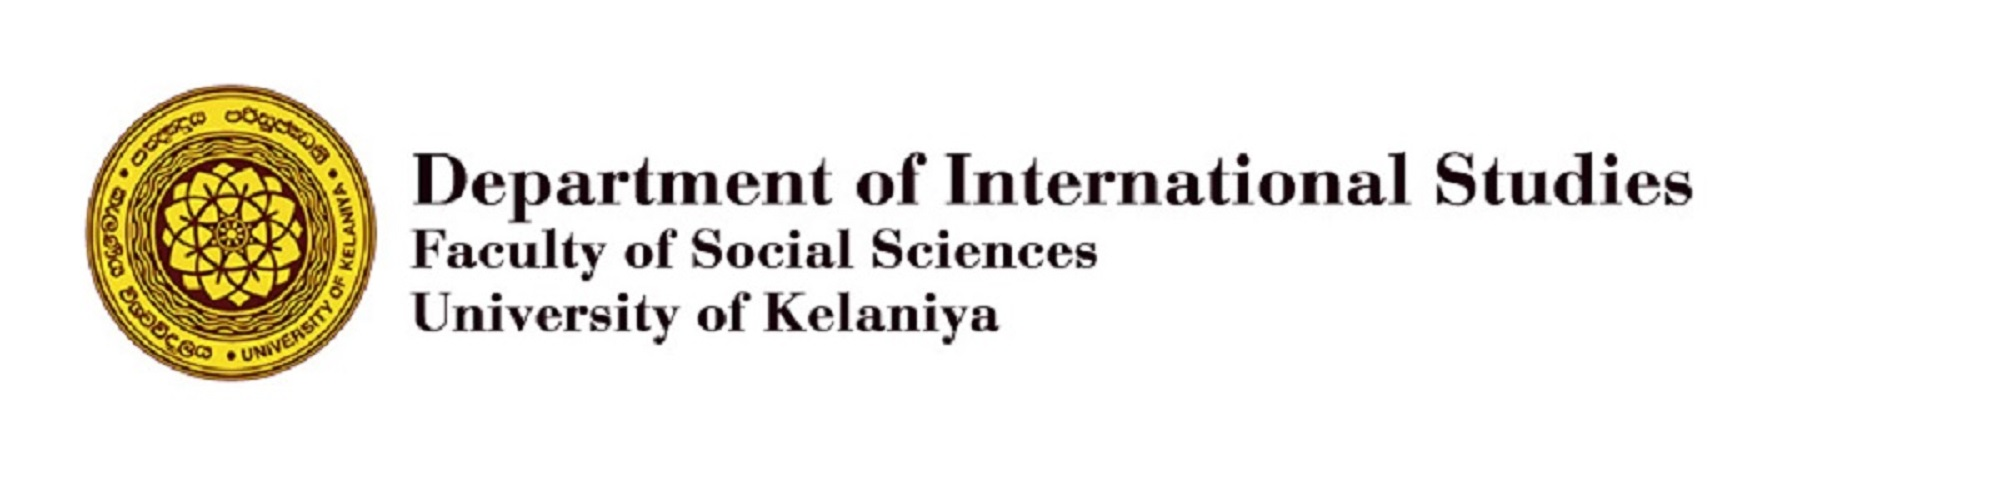 Department of International Studies